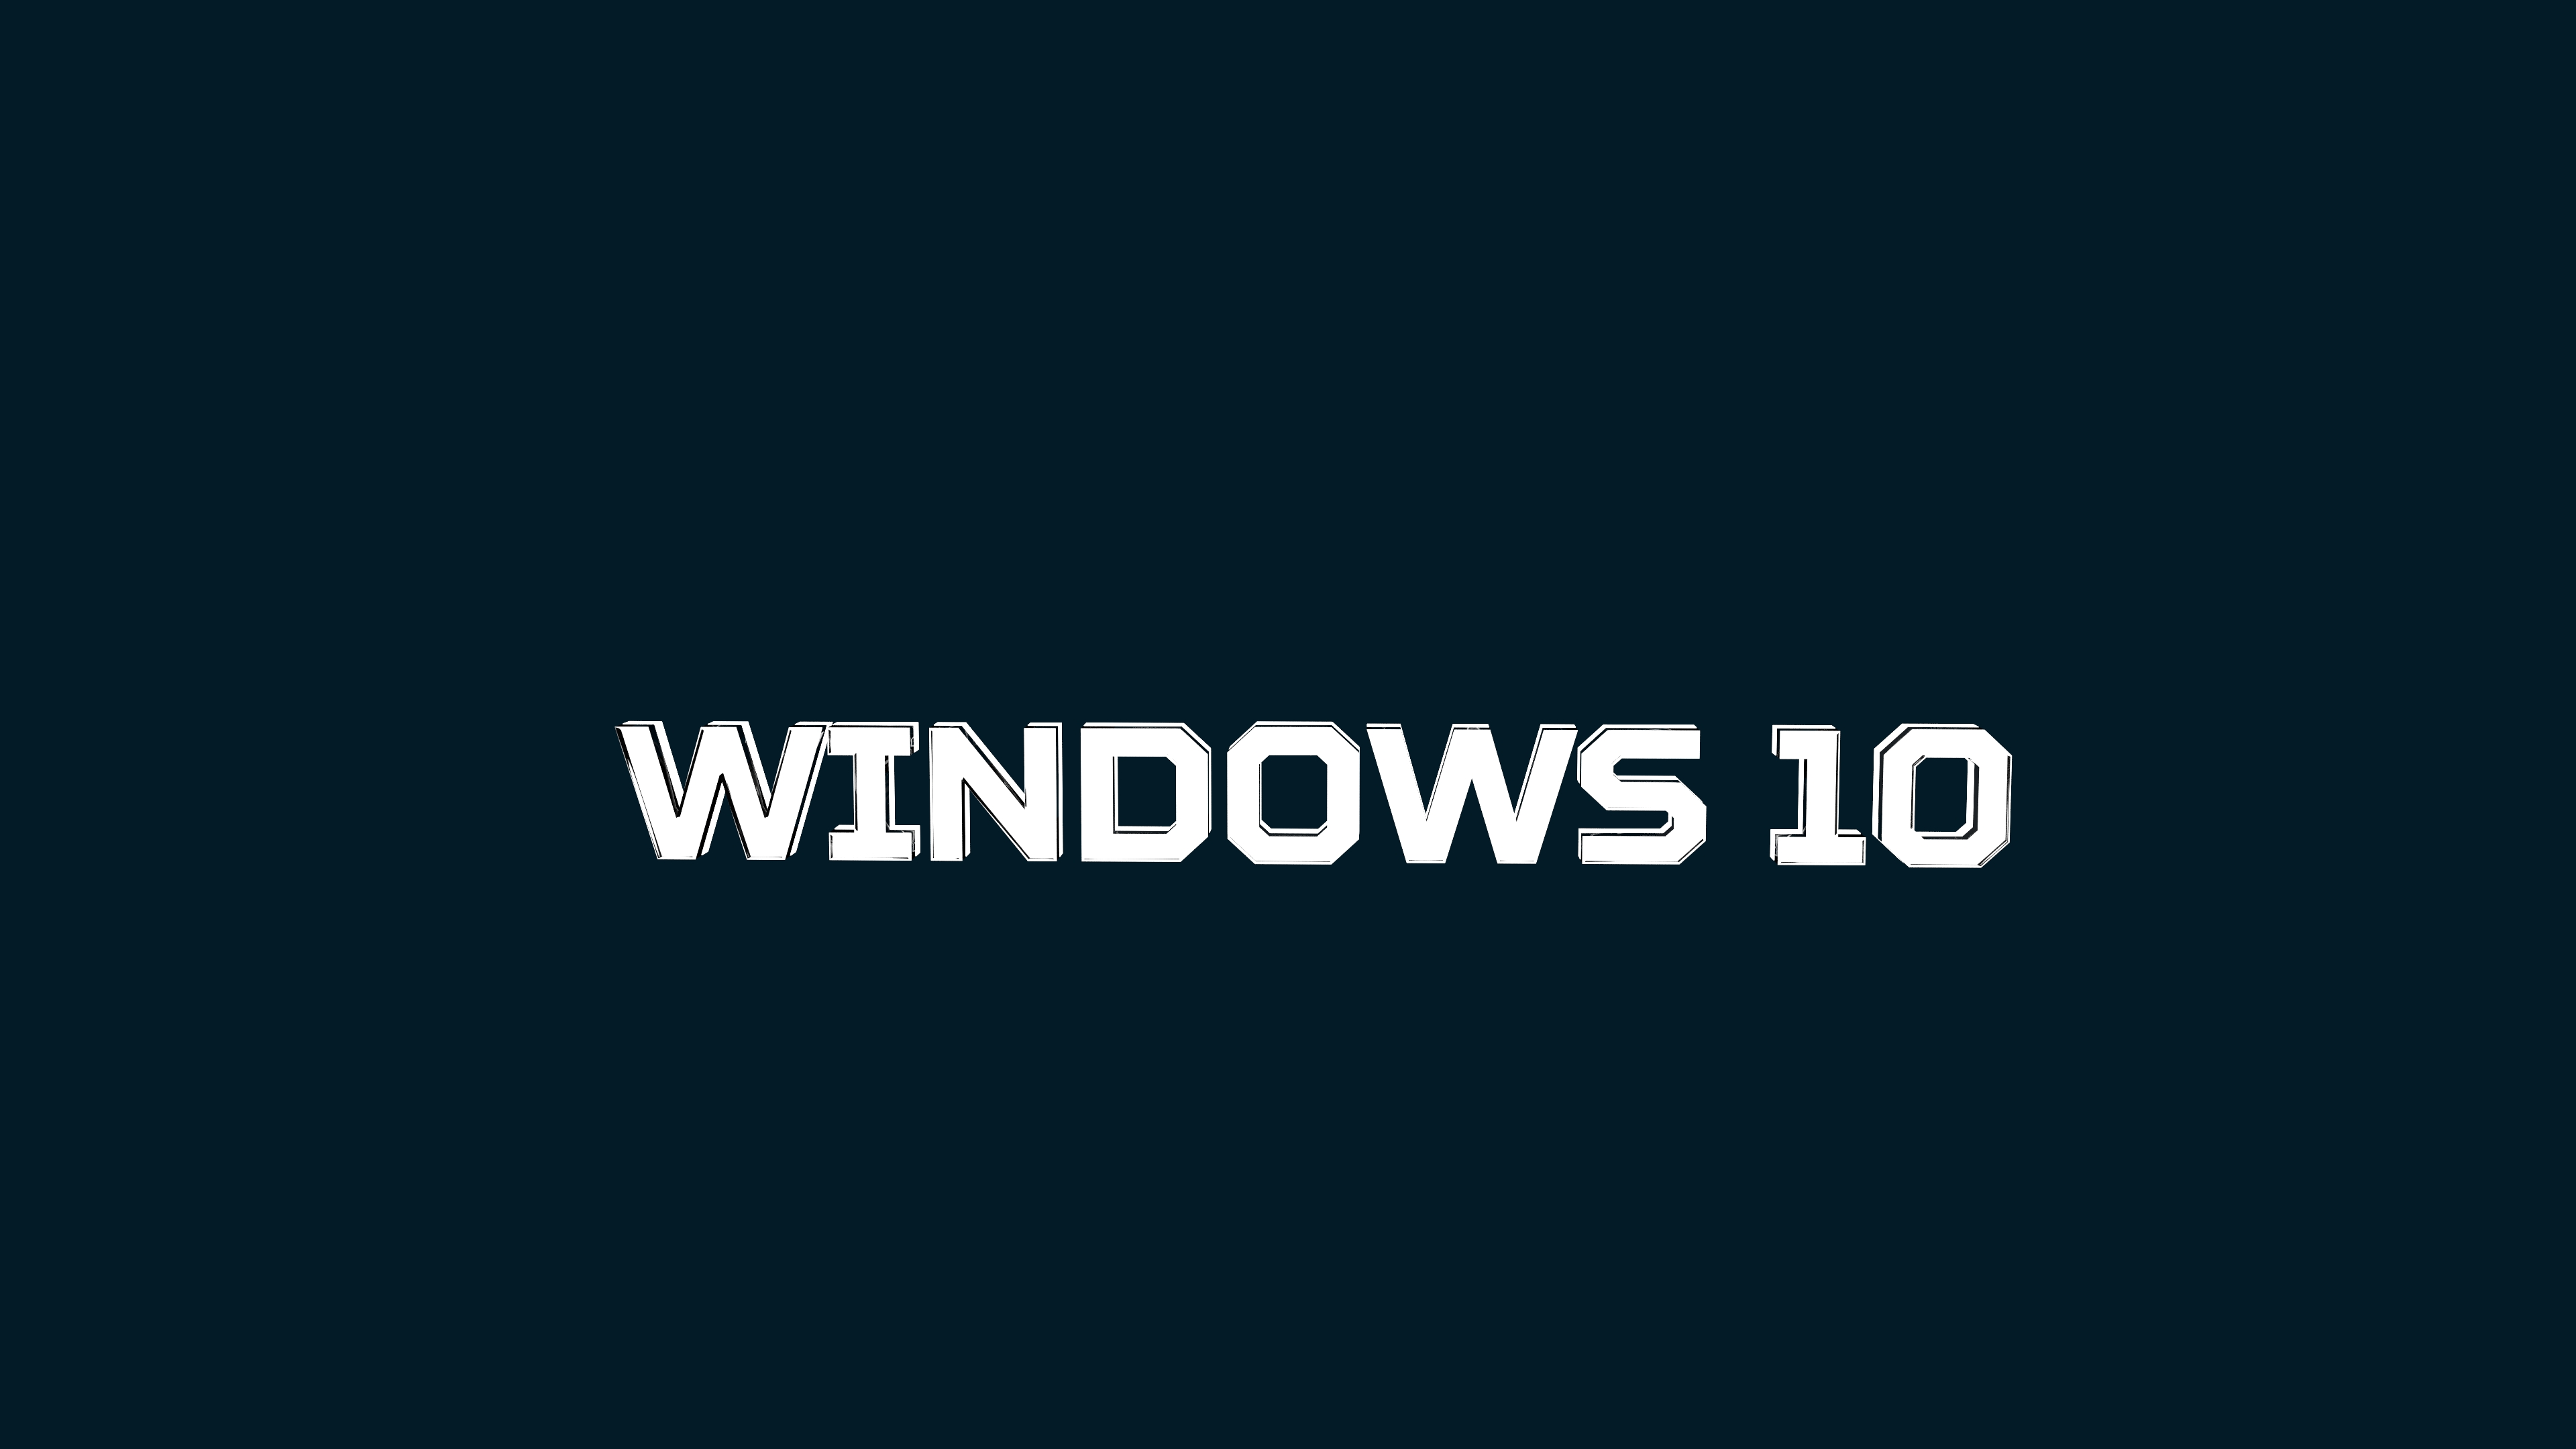 windows 10 dark blue Wallpapers Hintergrnde 3840x2160 ID568415 3840x2160